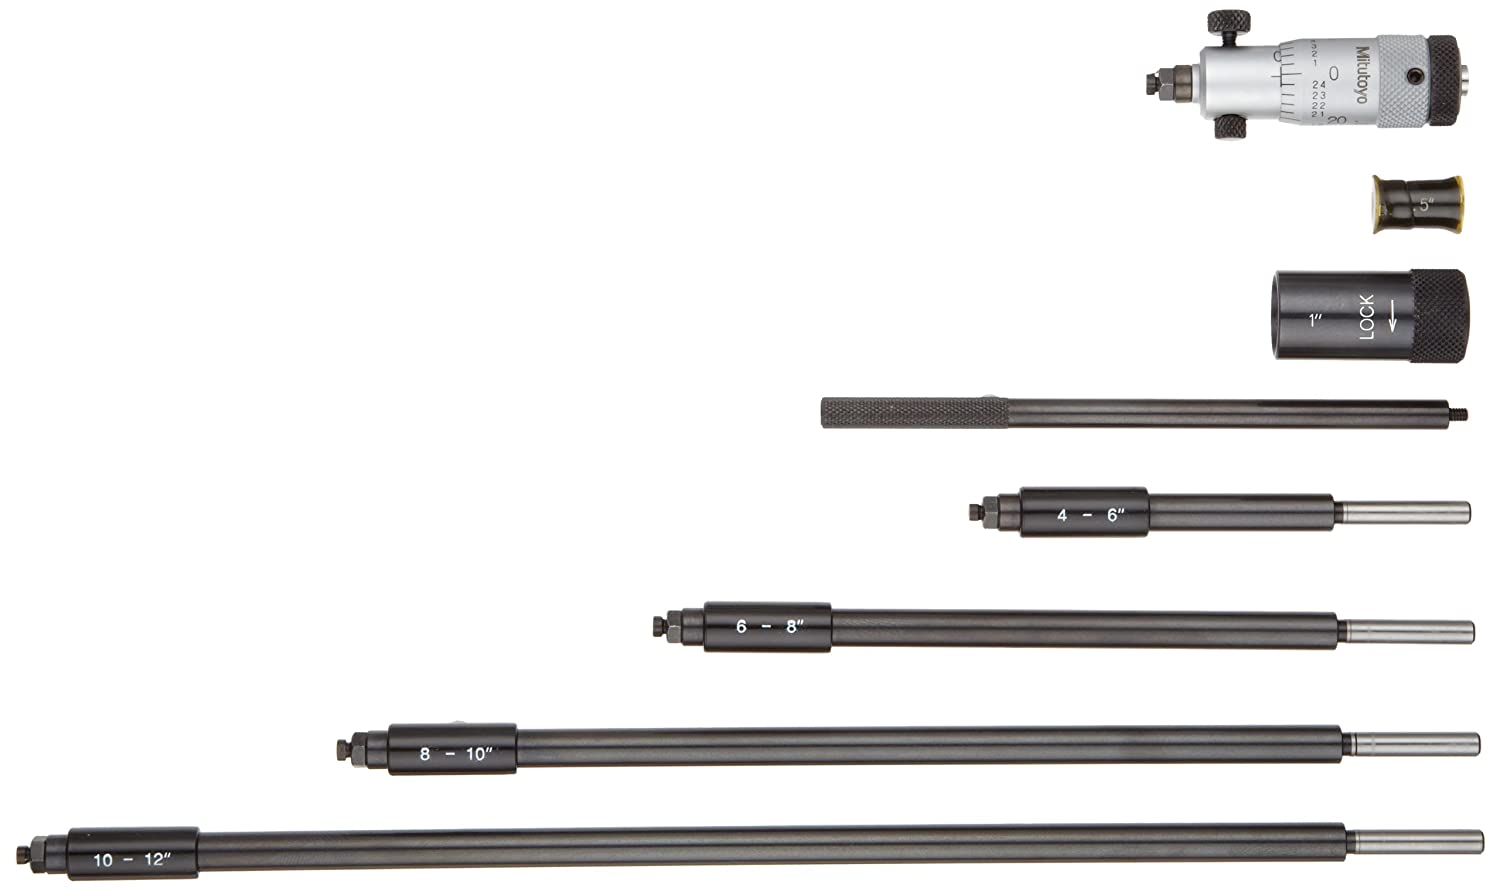 1-1.25 Range Carbide Tipped Face Mitutoyo 141-004 Vernier Inside Micrometer 0.001 Graduation +//-0.000265 Accuracy Interchangeable Rod Type